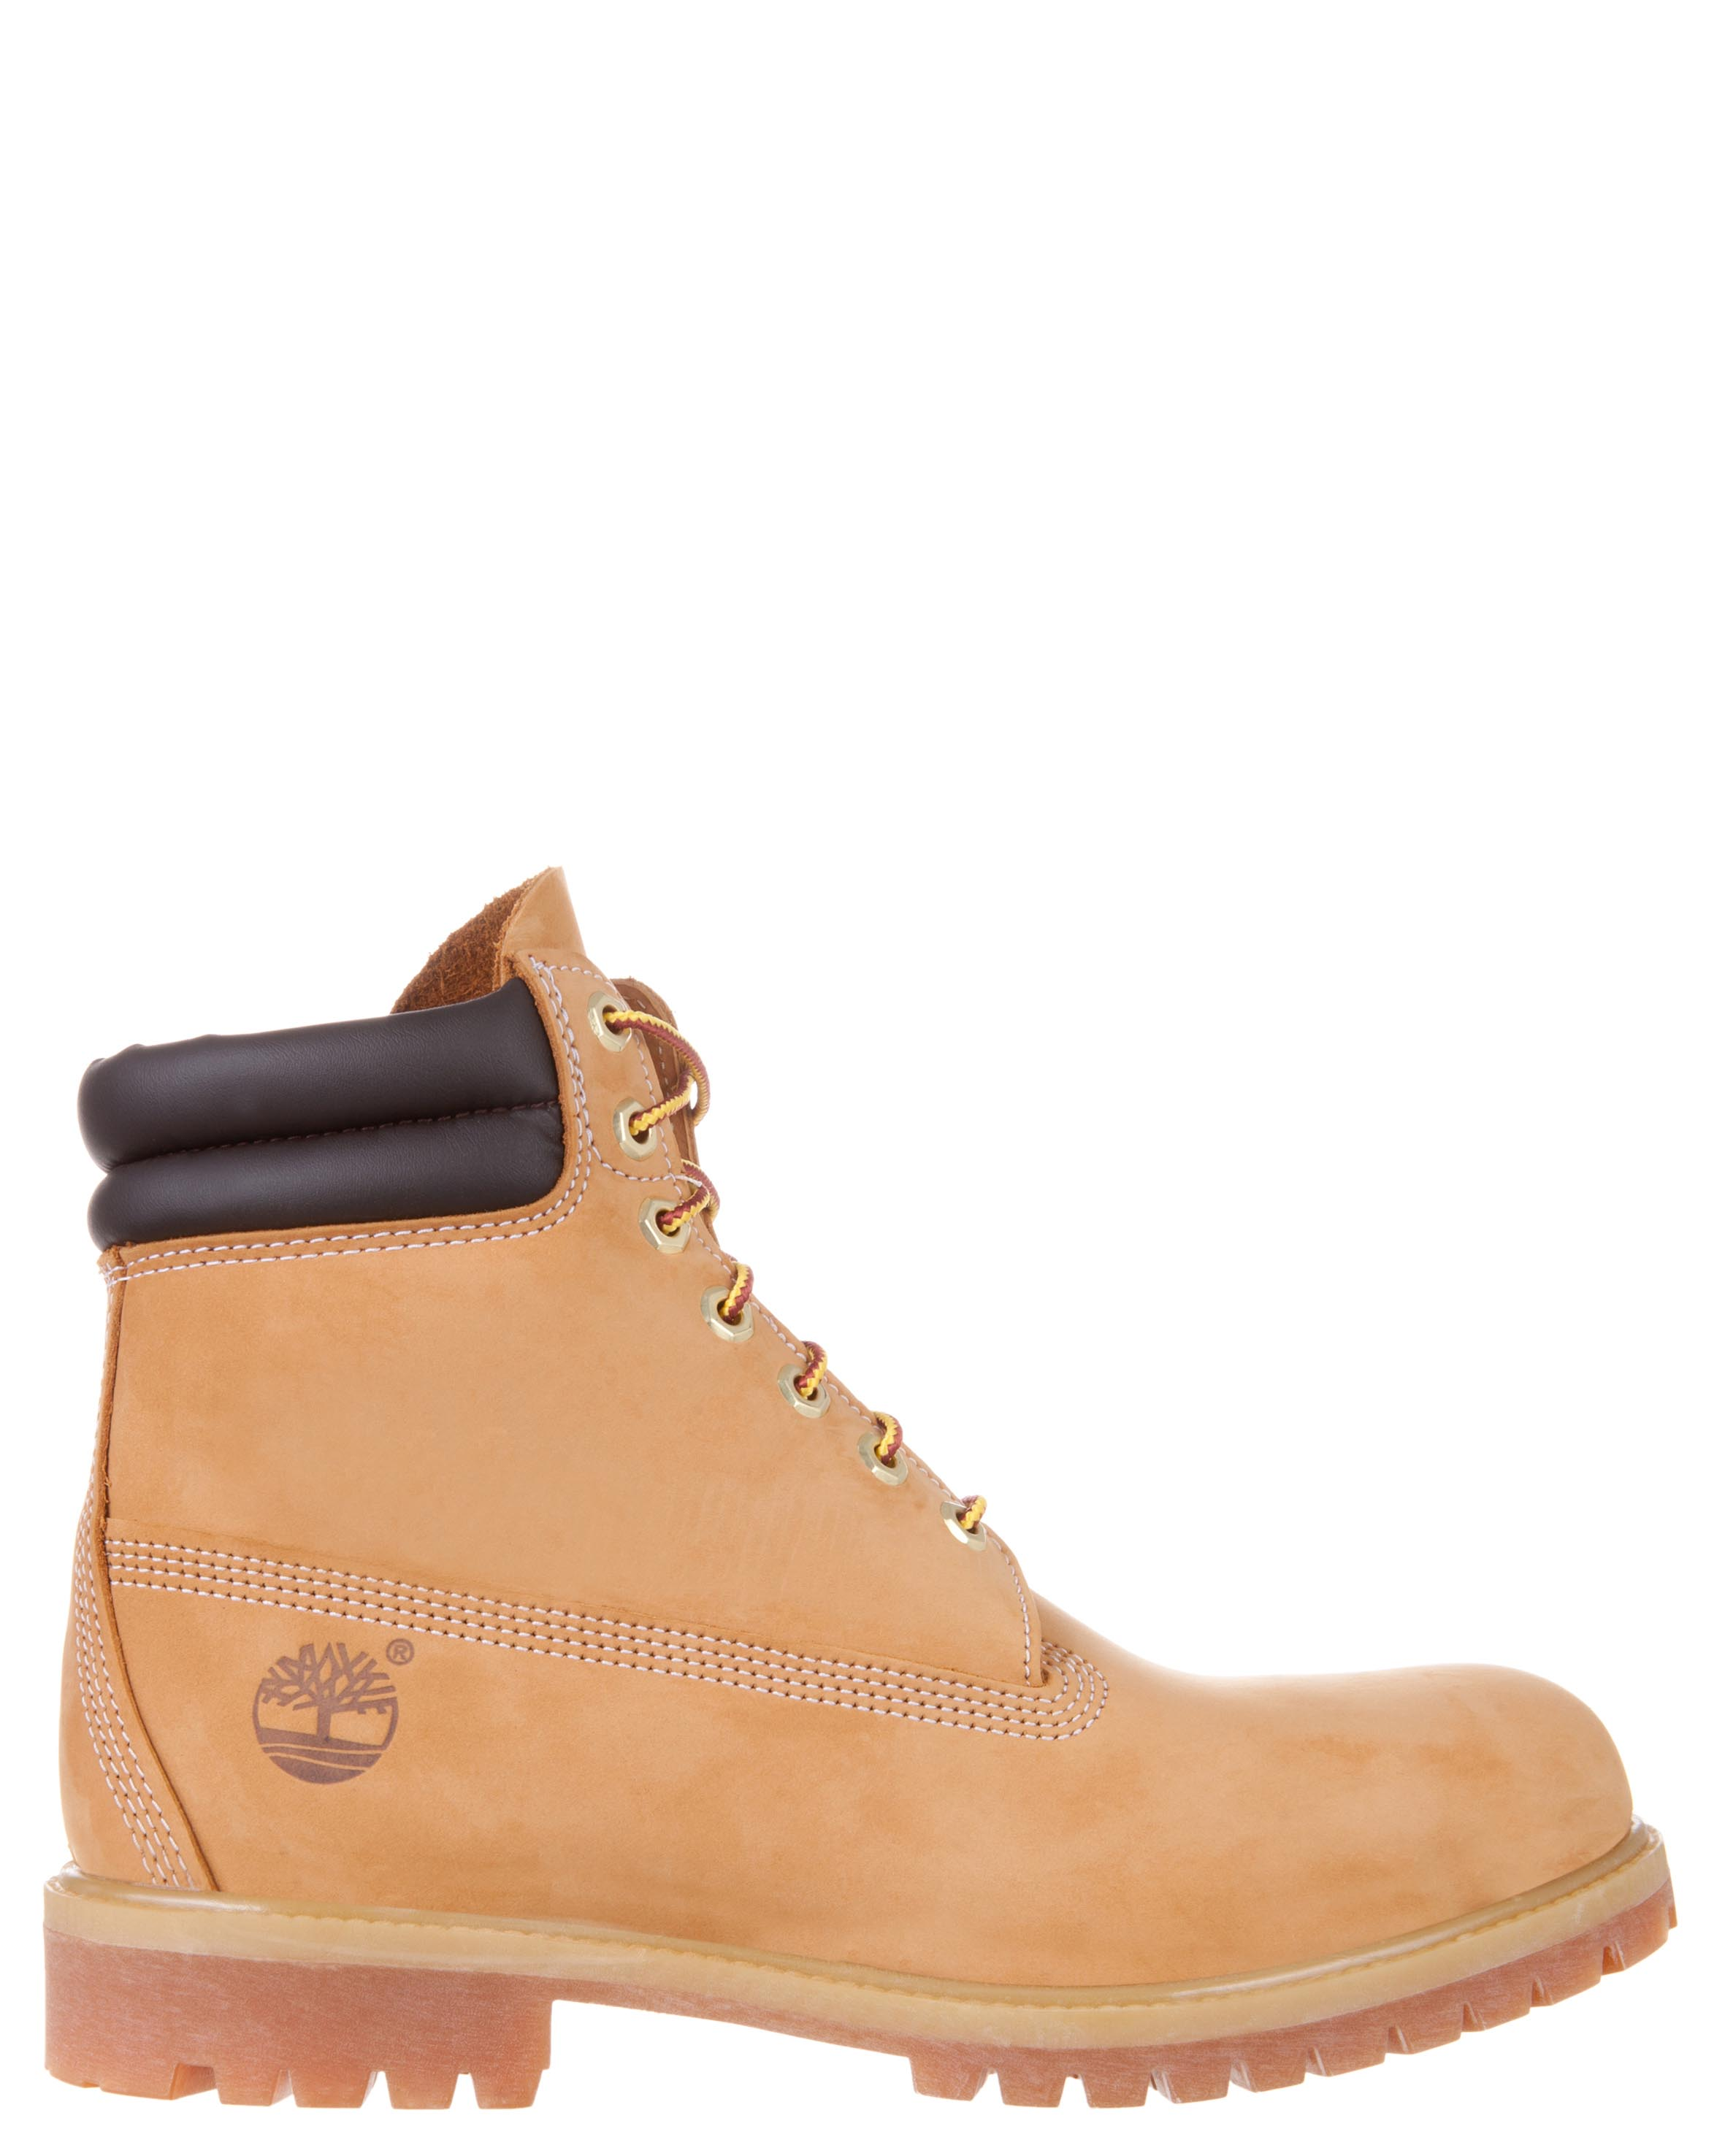 10 Cool Looking Men's Boots To Wear For The Snow Storm (LIST